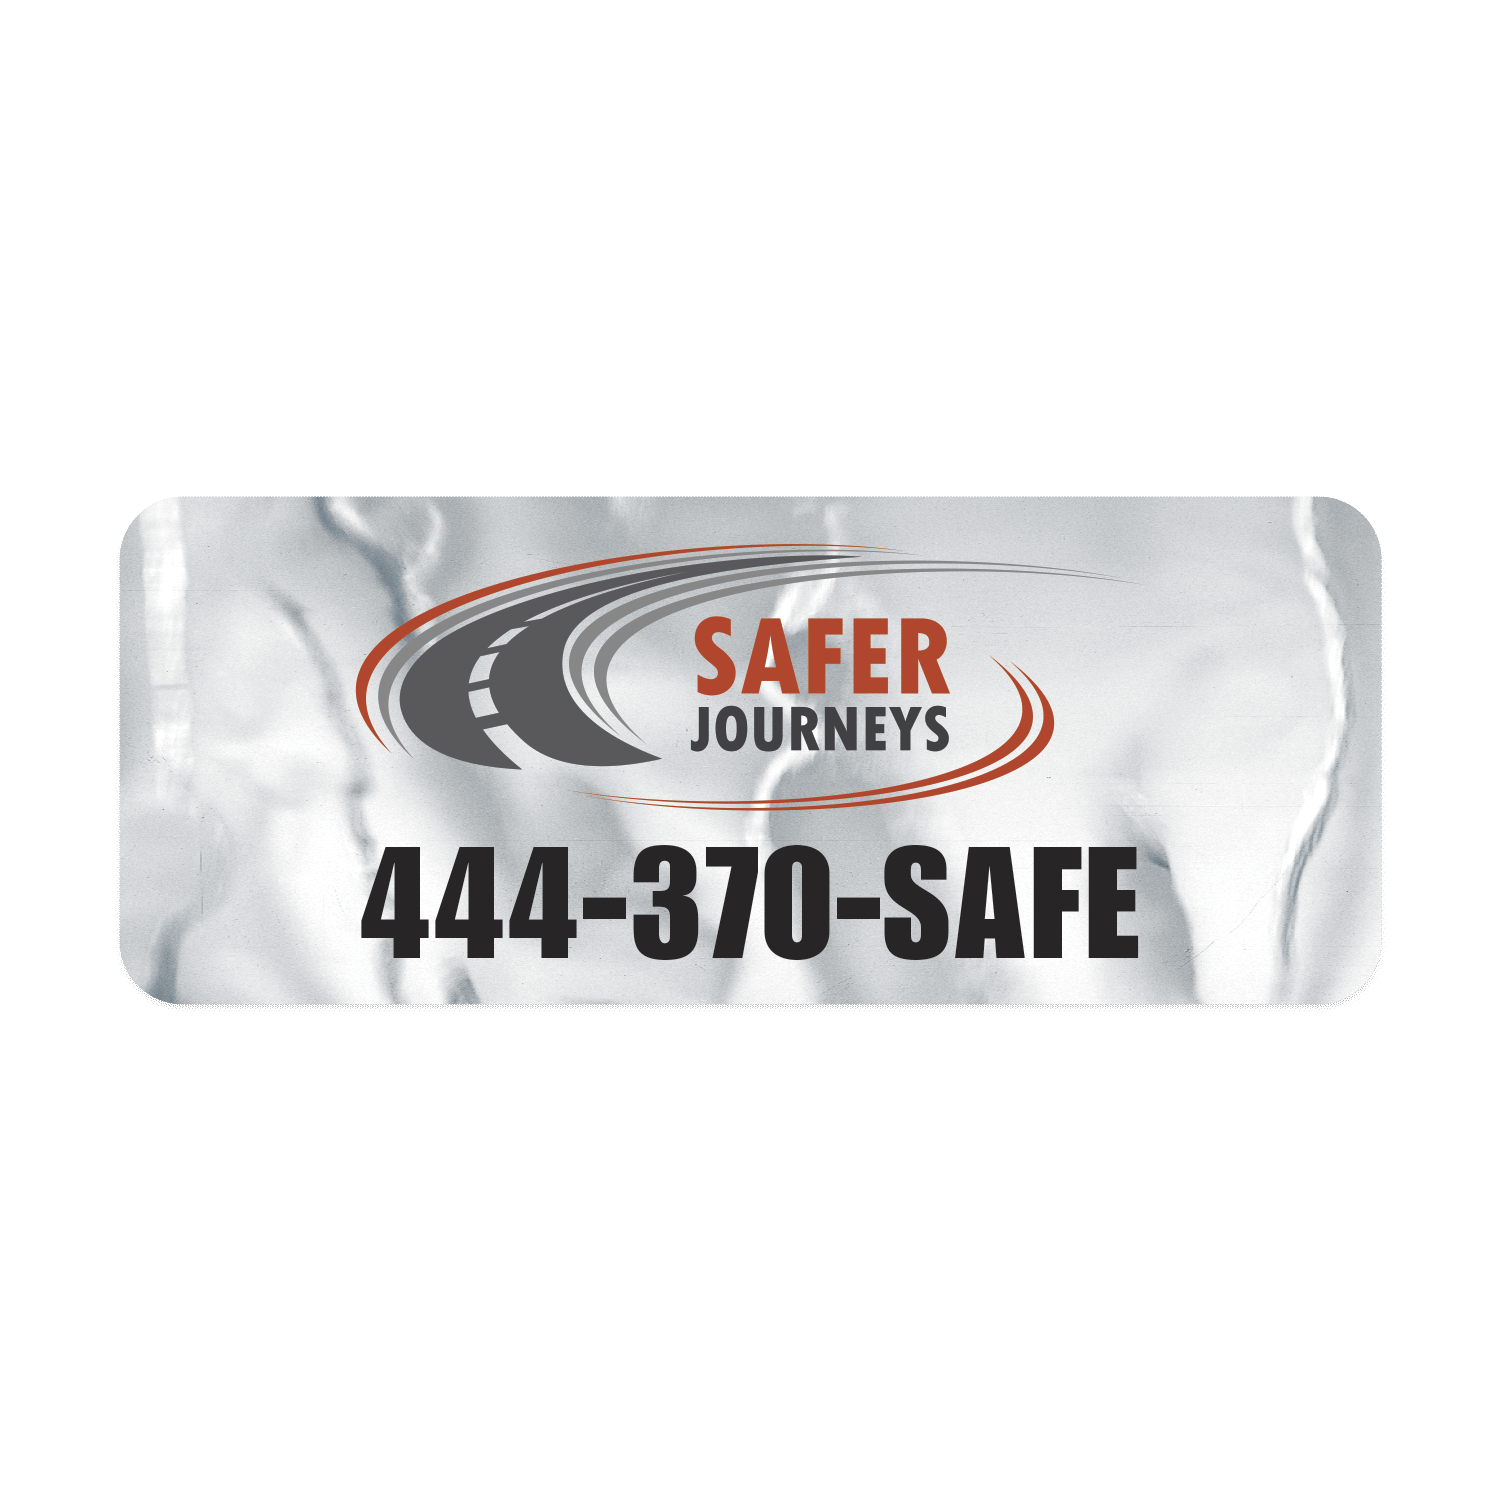 https://www.sswprinting.com/images/products_gallery_images/184321_Safer-Journeys-Roadside-Assistance_hi-res.png